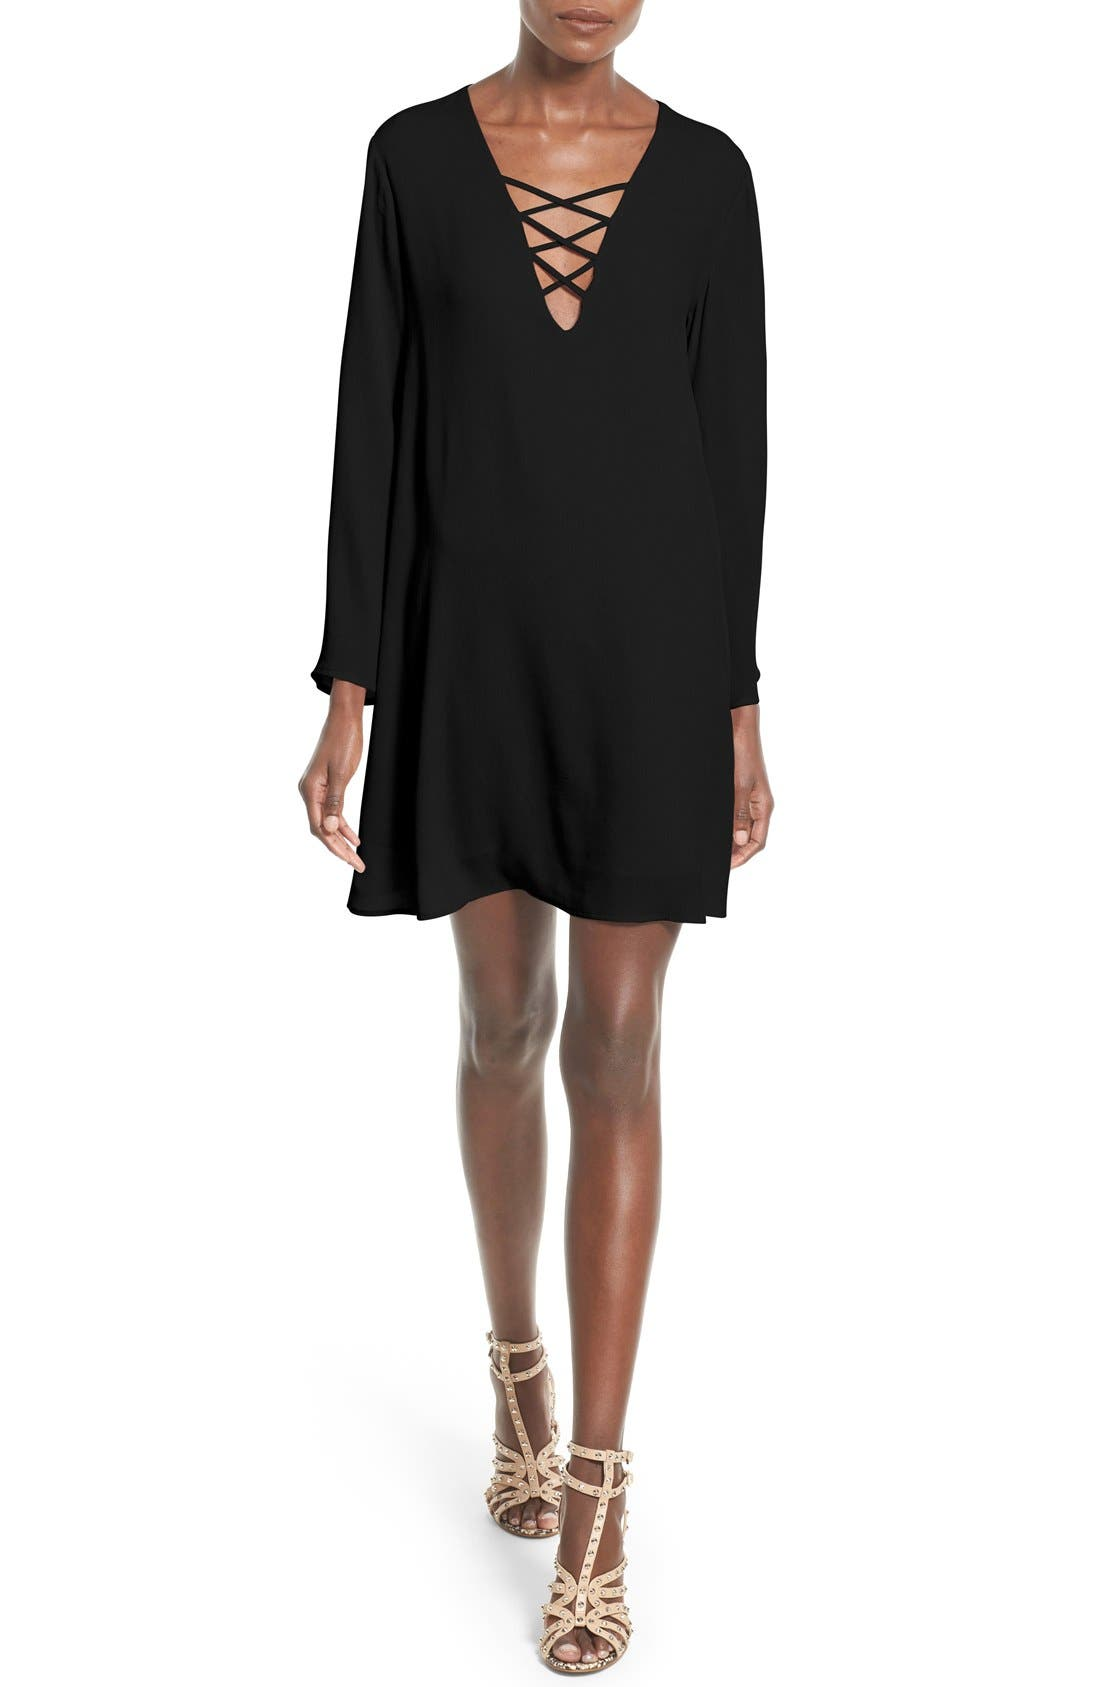 ASTR THE LABEL ASTR Lace-Up Bell Sleeve Shift Dress, Main, color, 001